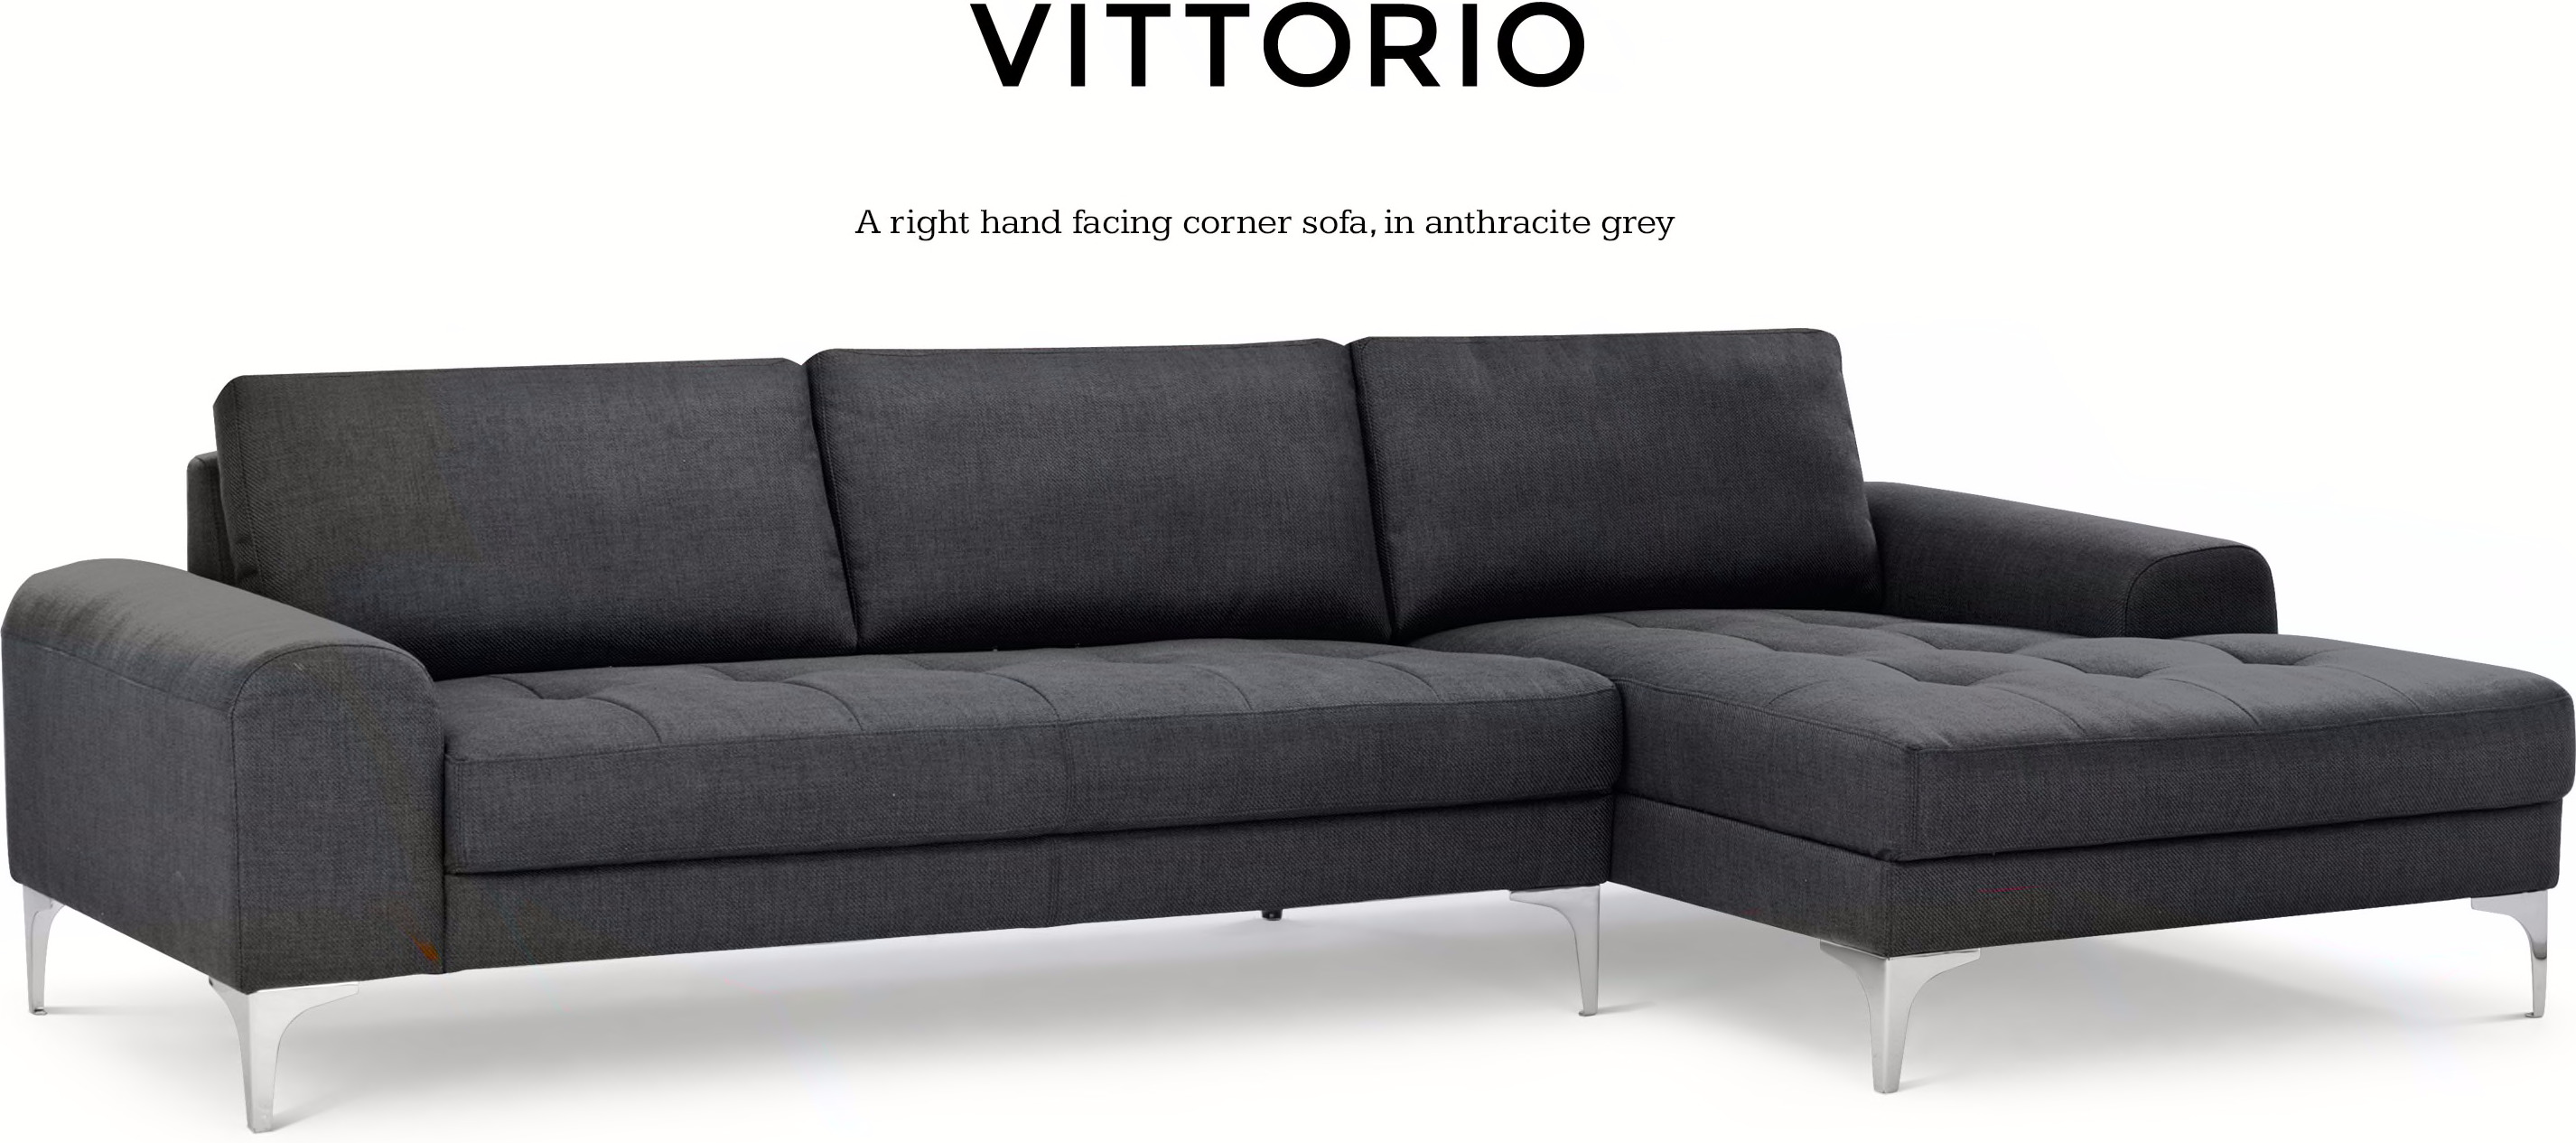 Vittorio Right Hand Facing Corner Sofa Group Anthracite Grey